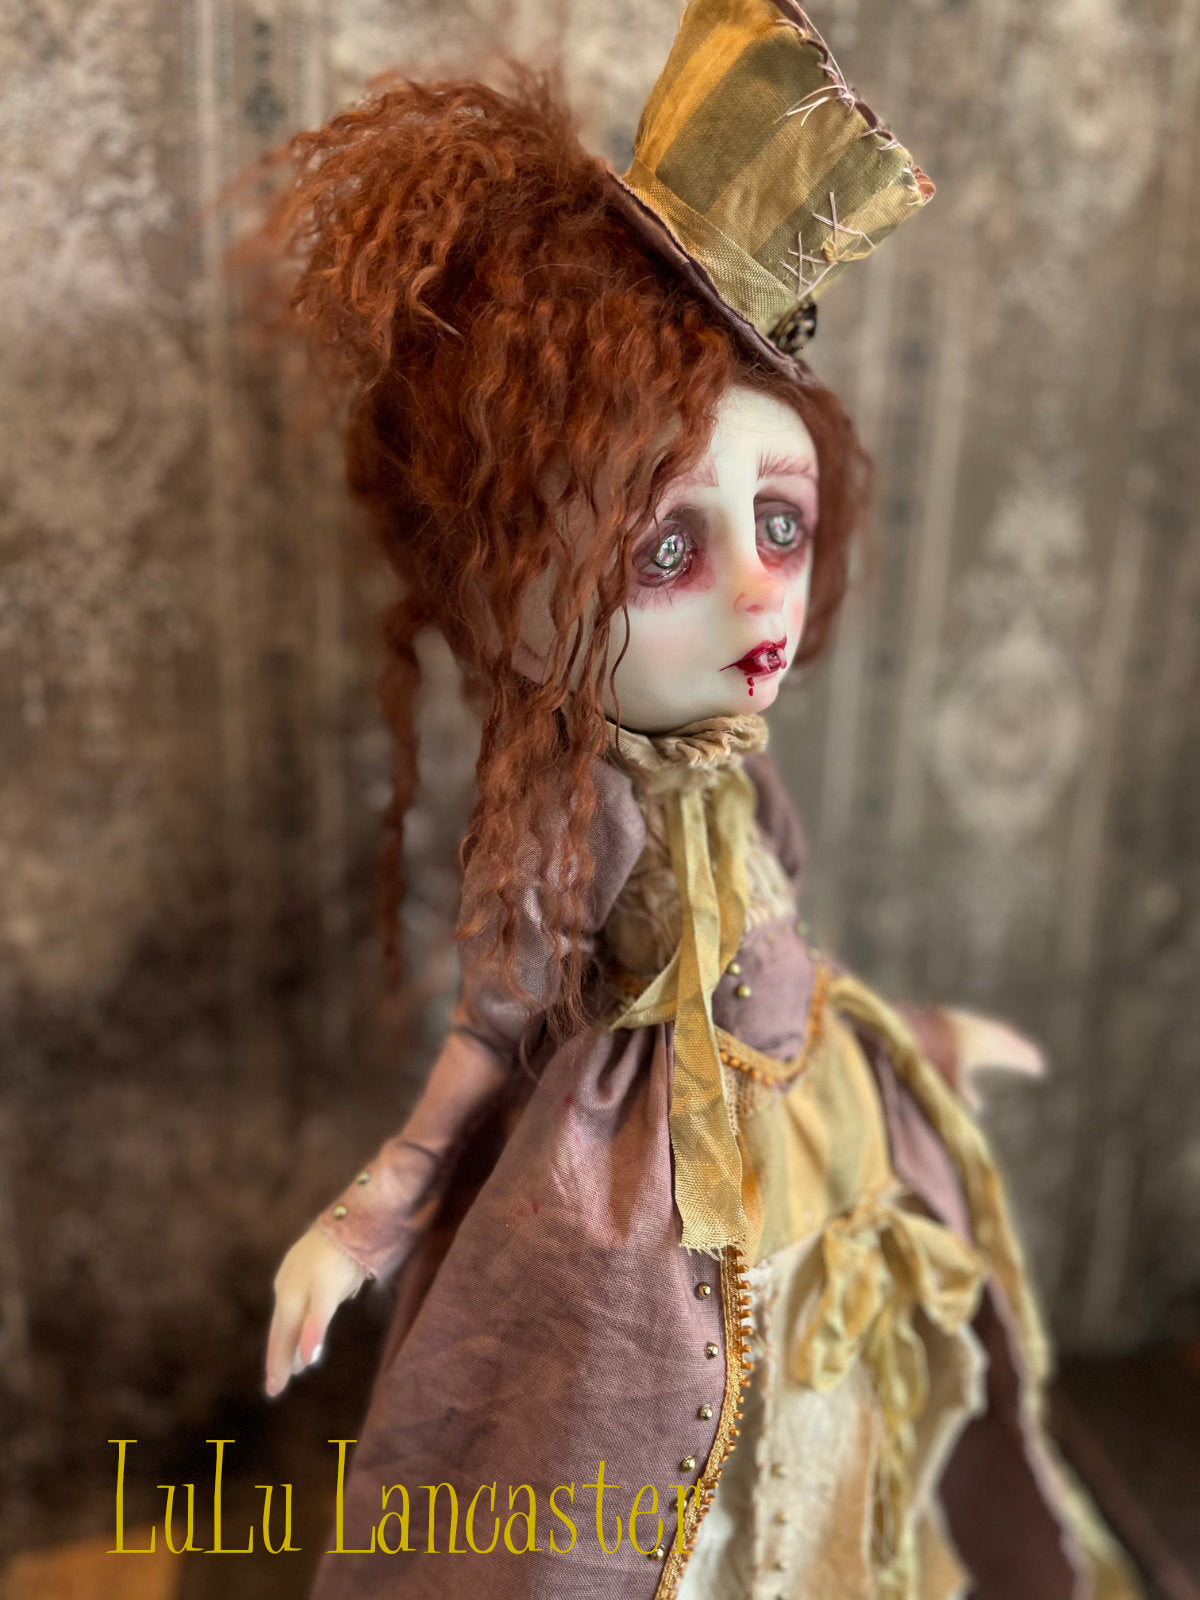 Ceri the Vampire Original LuLu Lancaster Art Doll